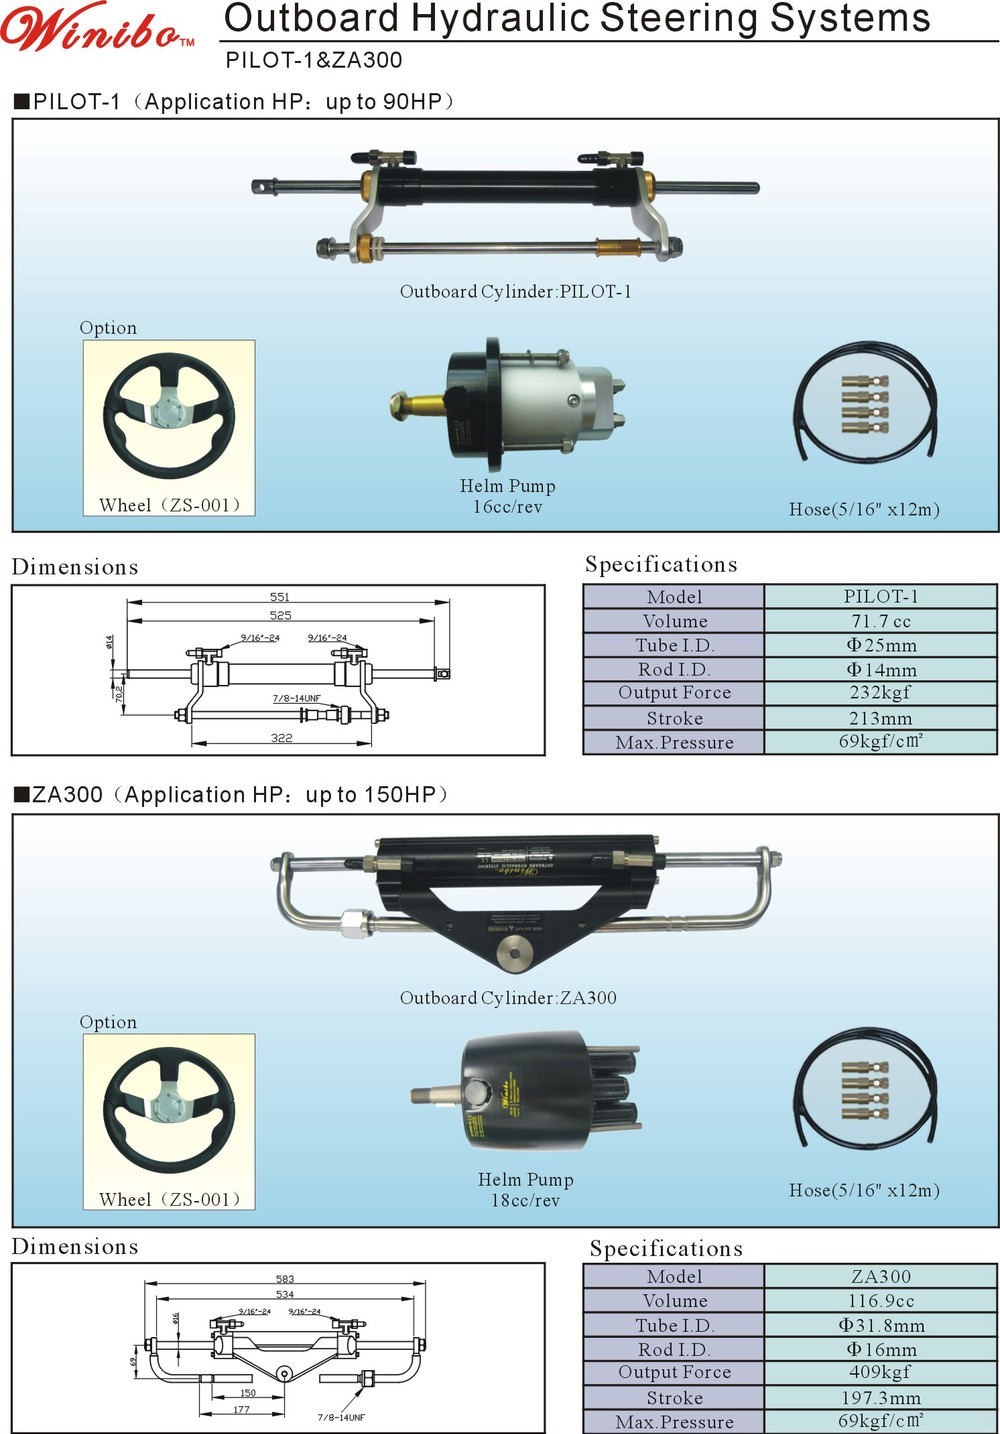 US $319 0 |Hydraulic steering system for 150HP-in Hydraulic Tools from  Tools on Aliexpress com | Alibaba Group